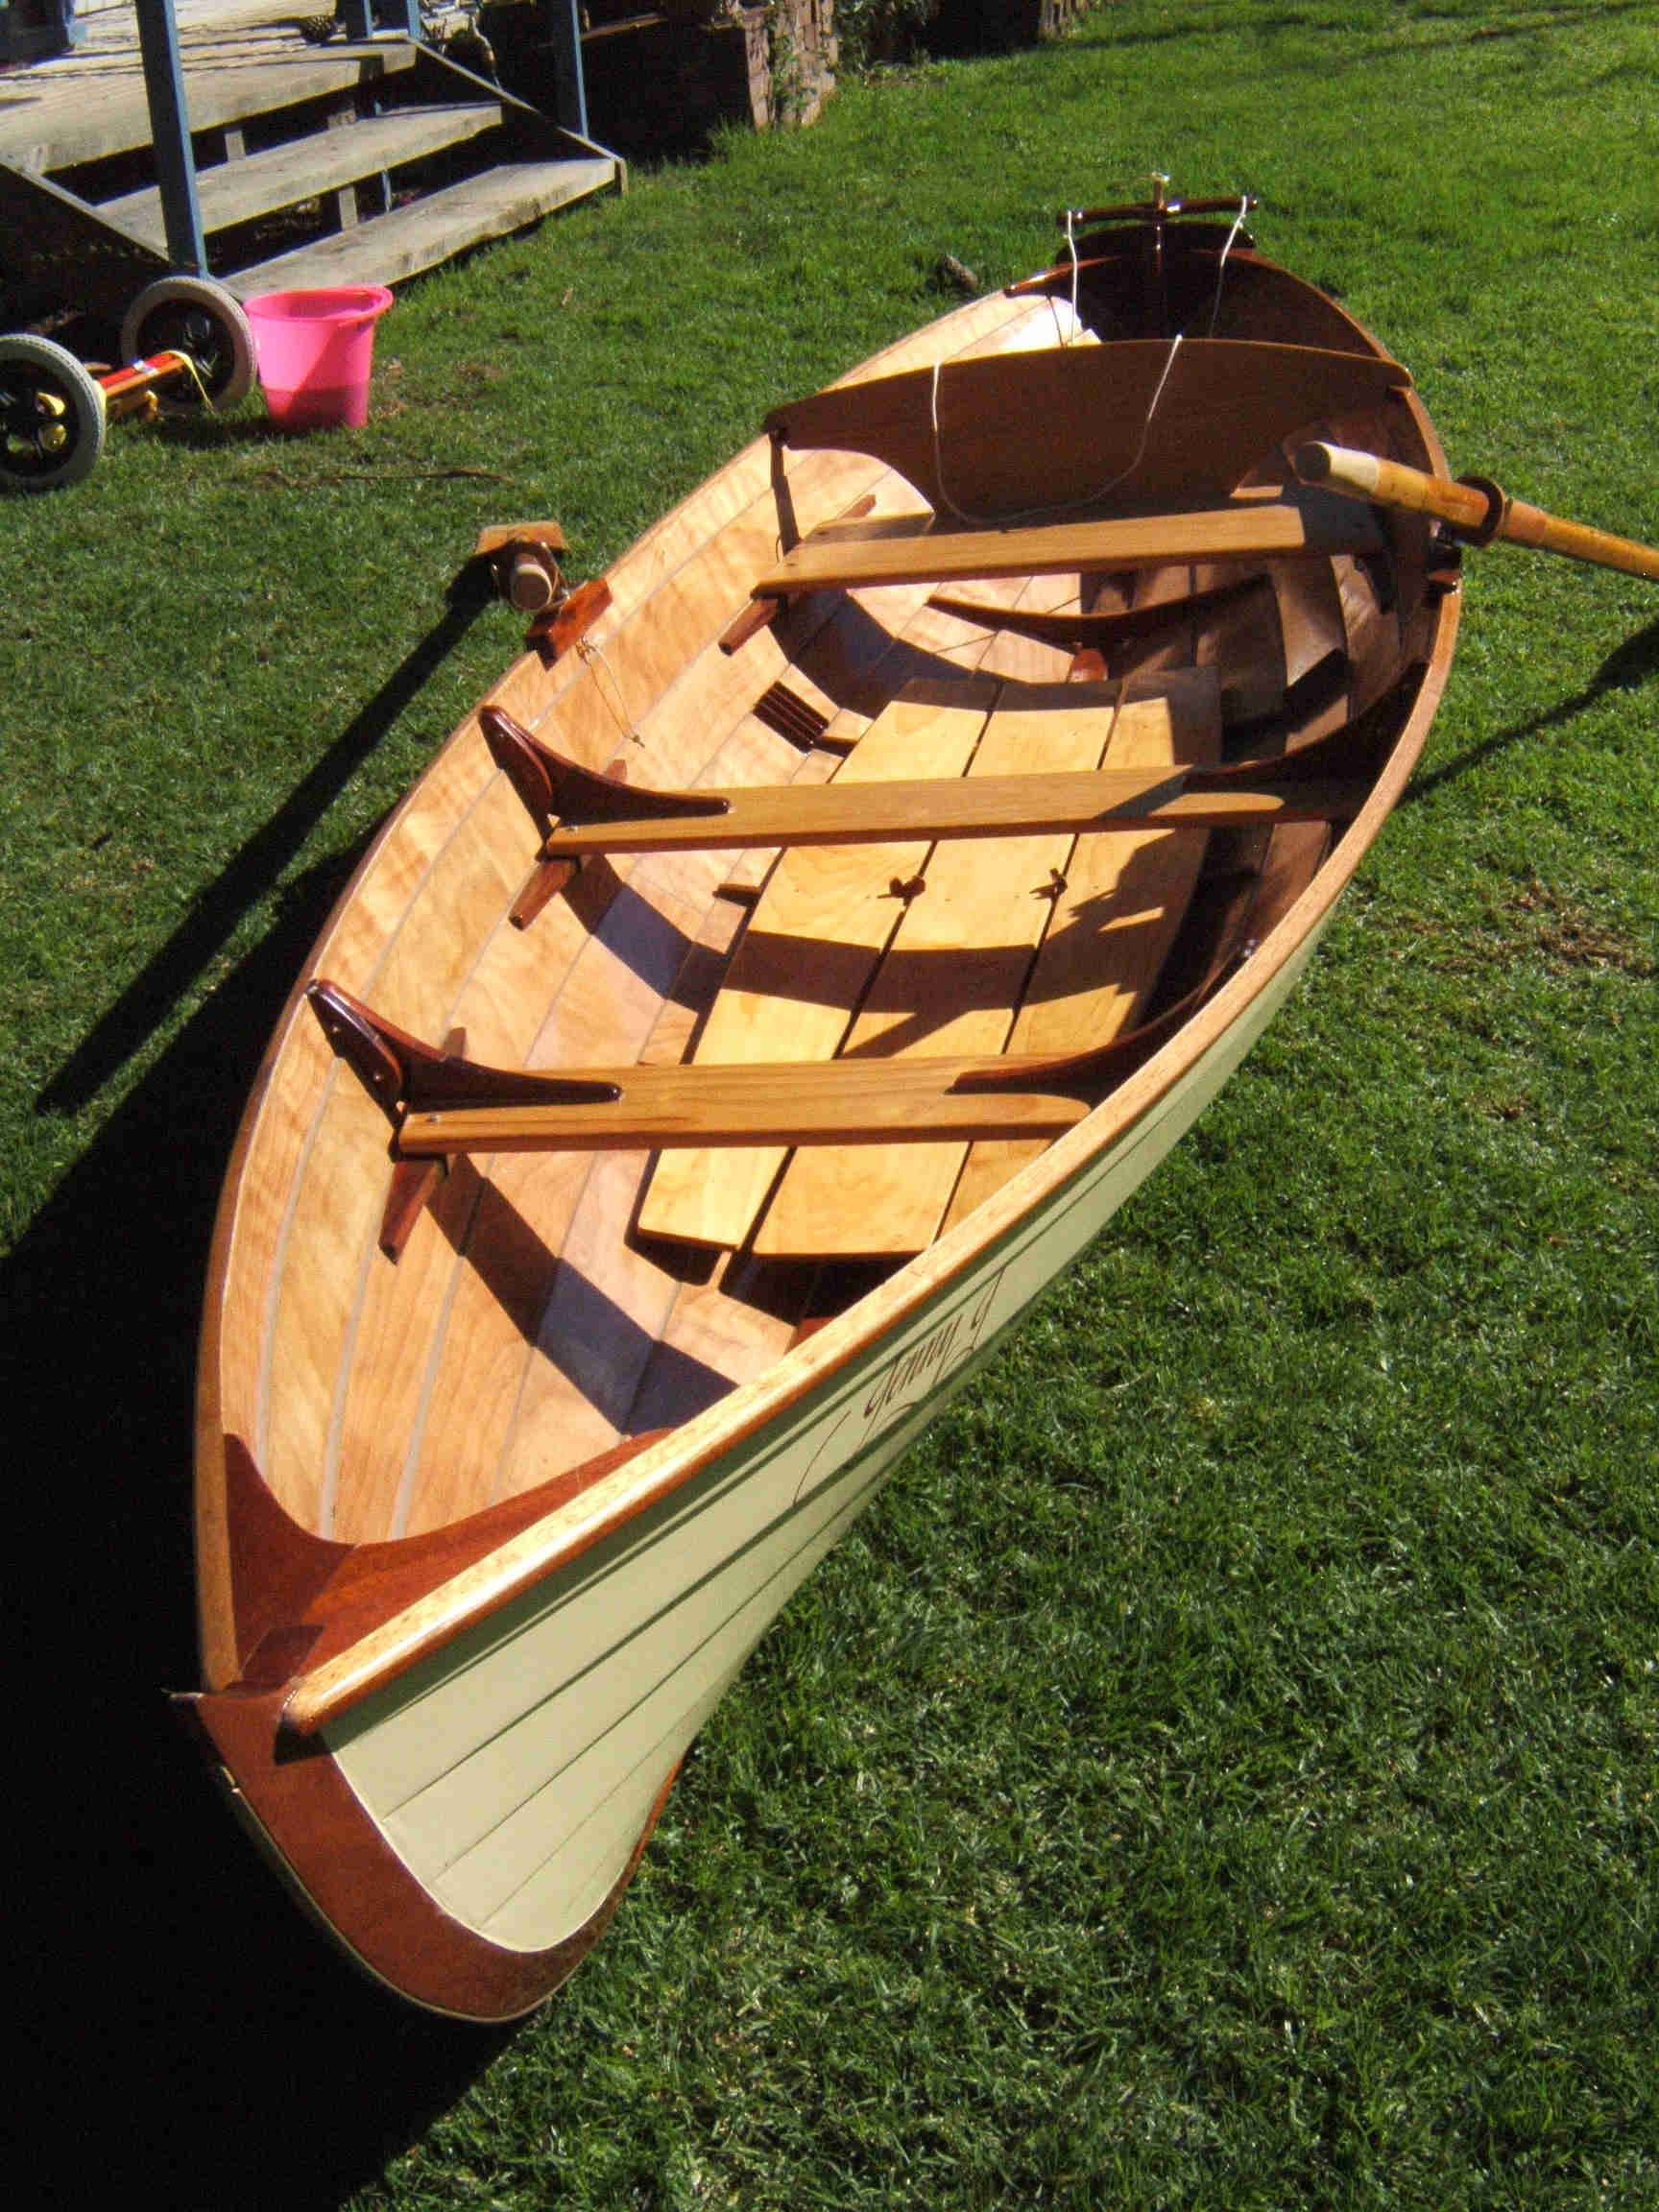 Jenny J upright from bow small file.jpg